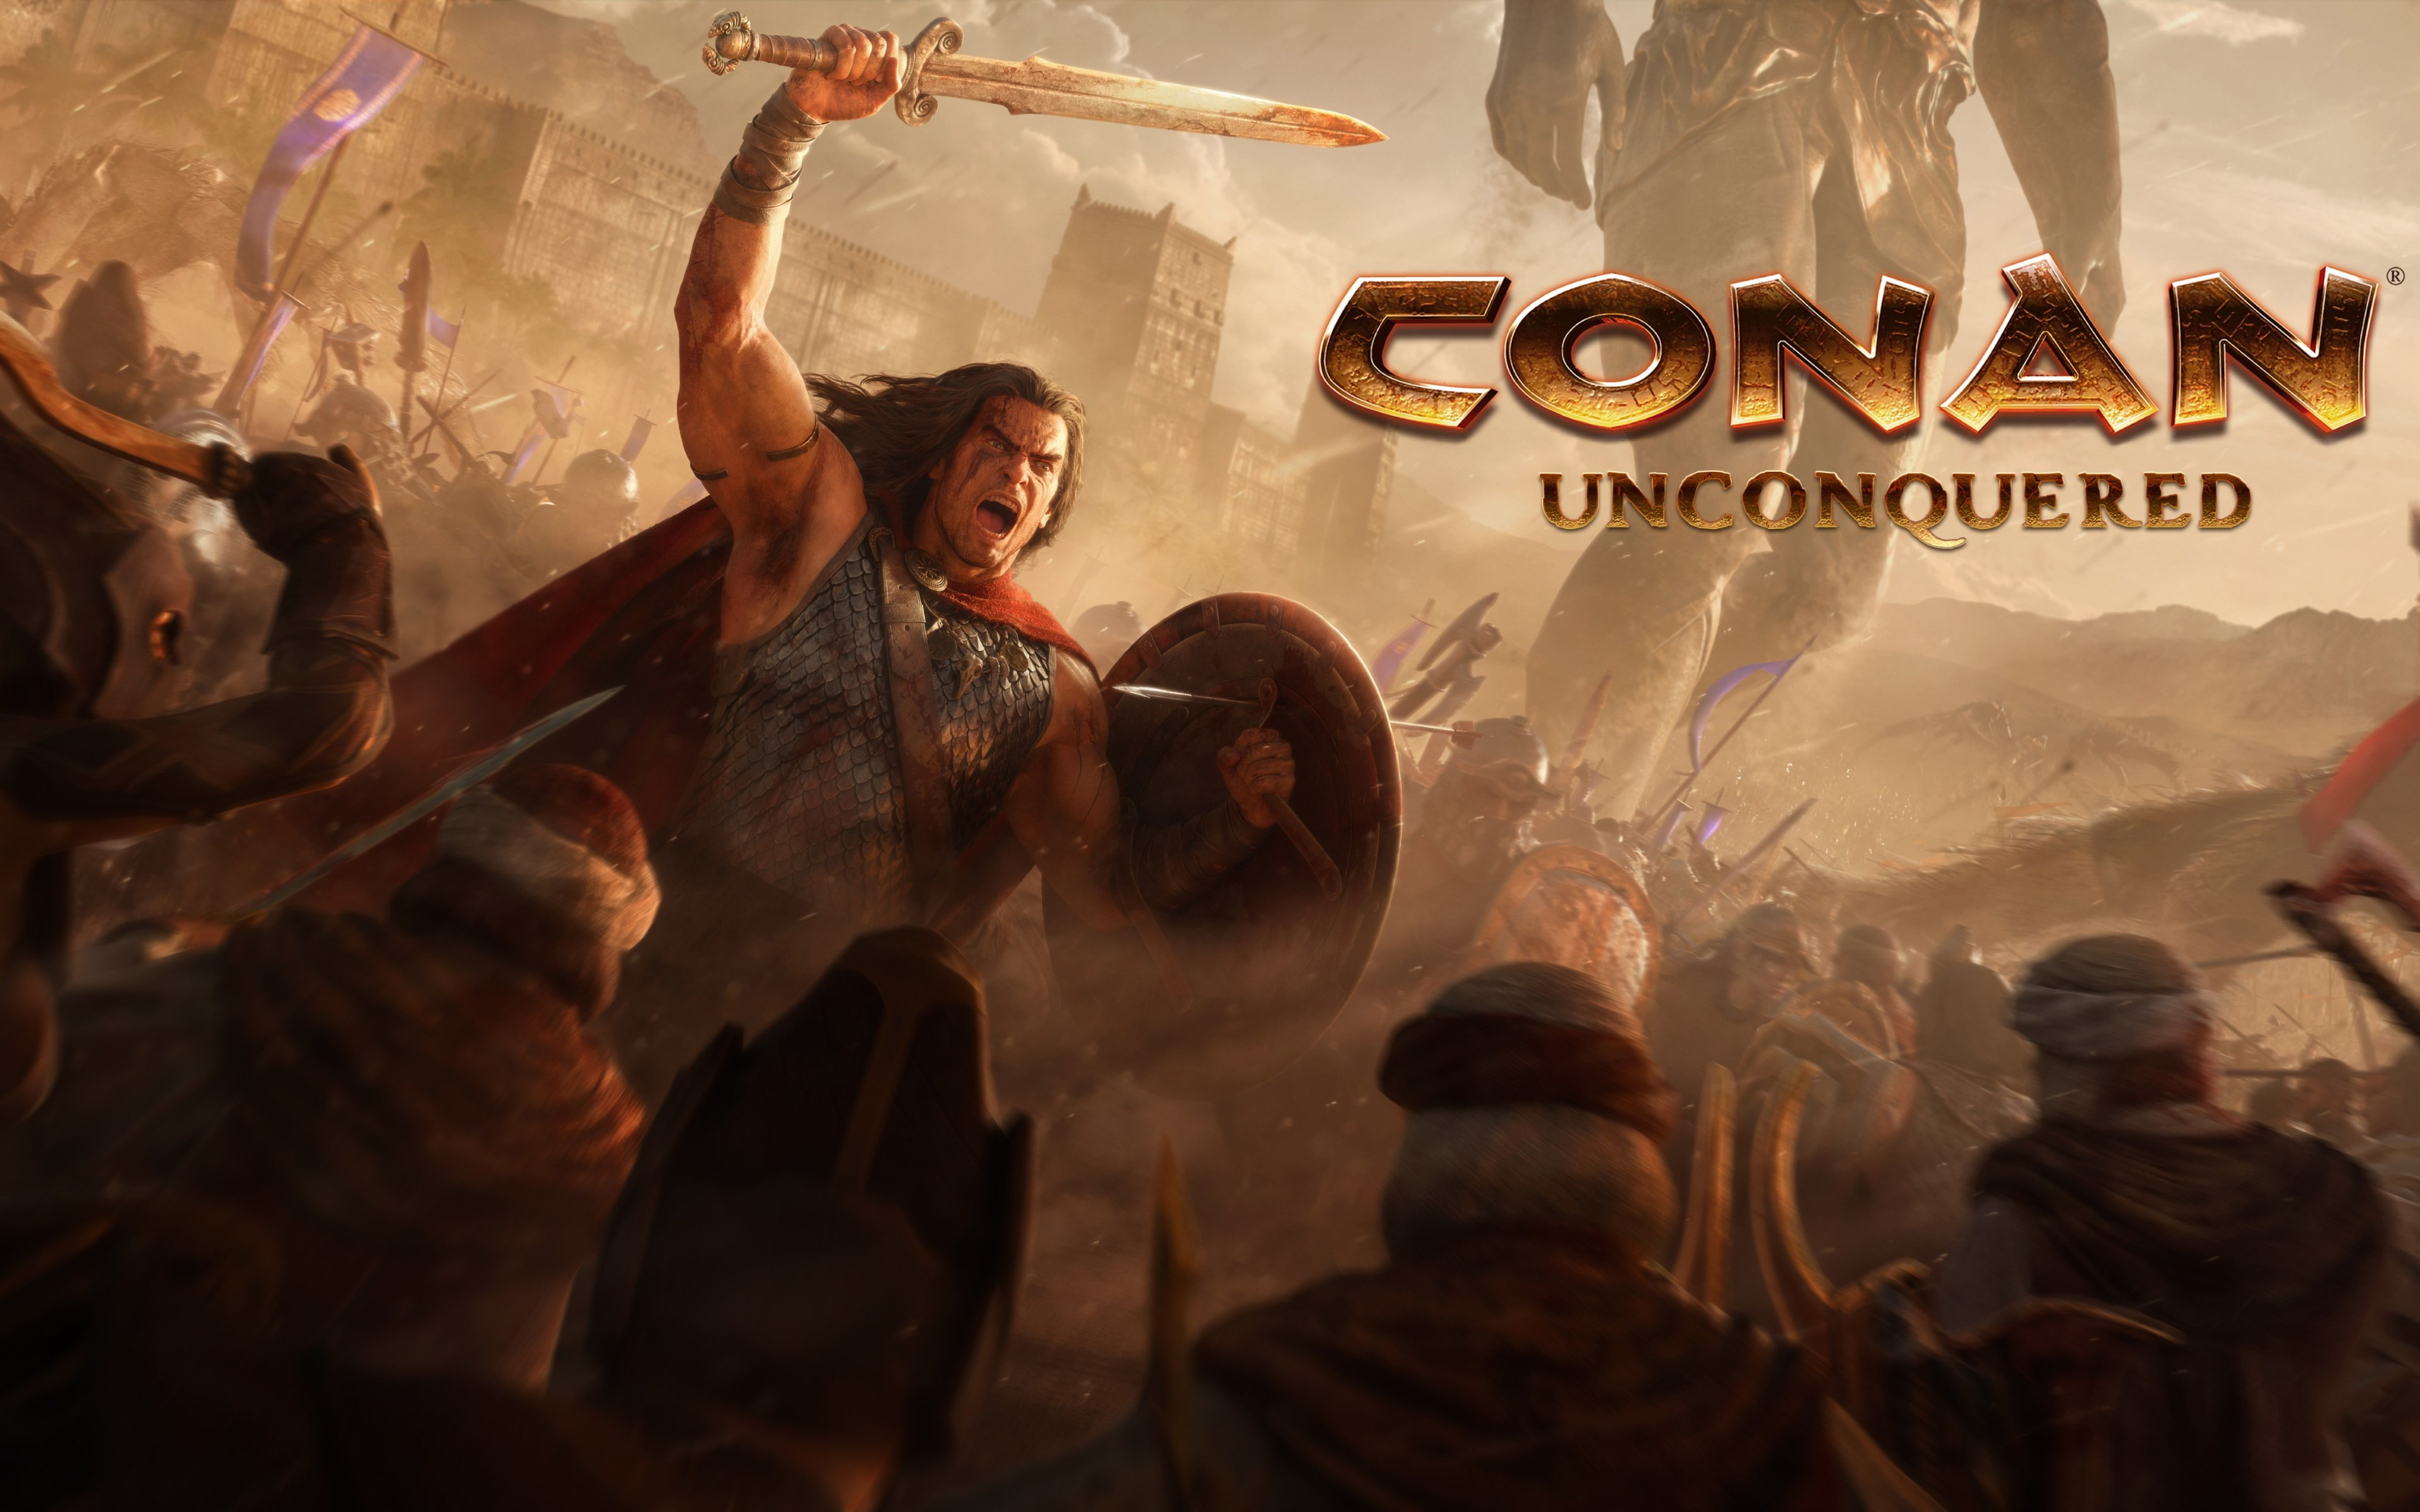 Conan Unconquered wallpaper 3840x2400